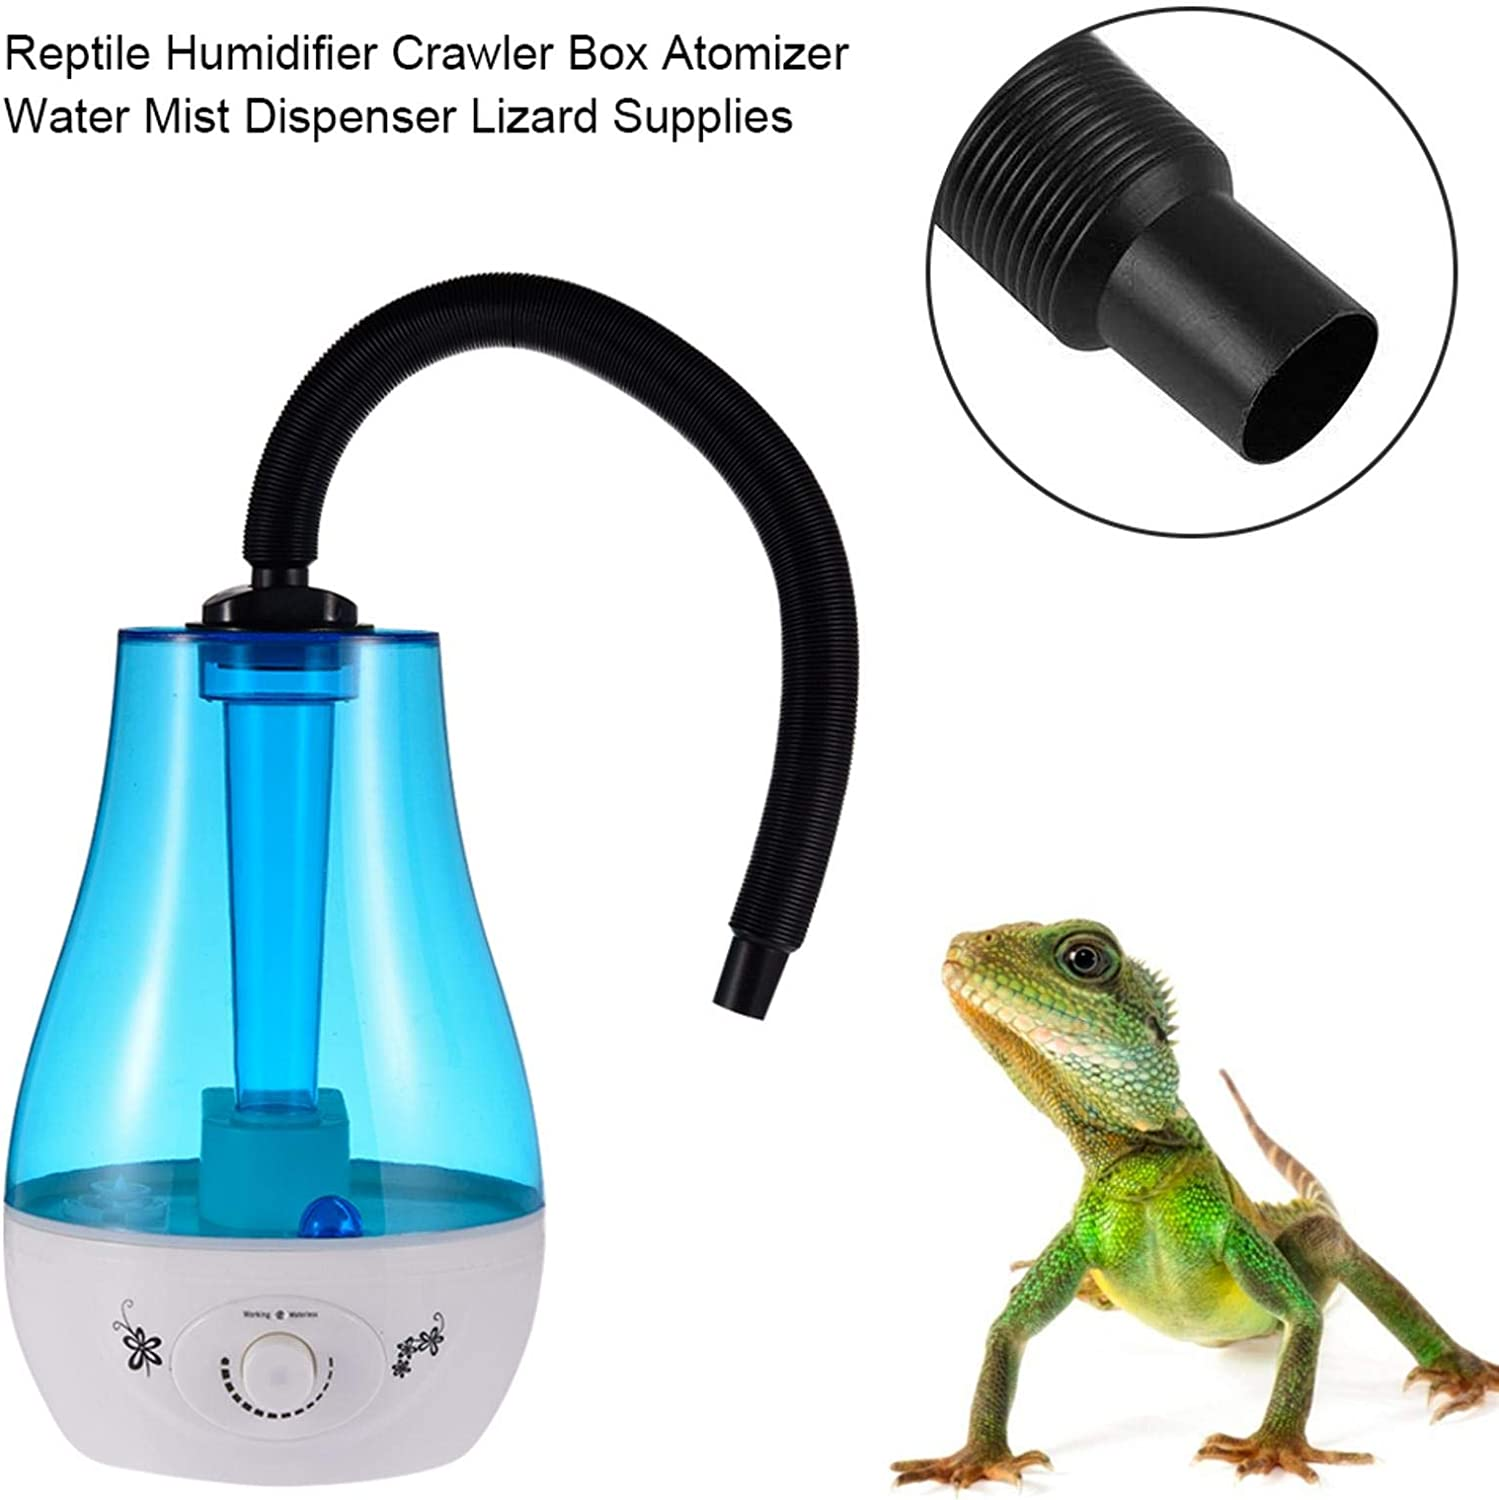 The 9 Best Reptile Foggers, Reptile Humidifiers of 2020